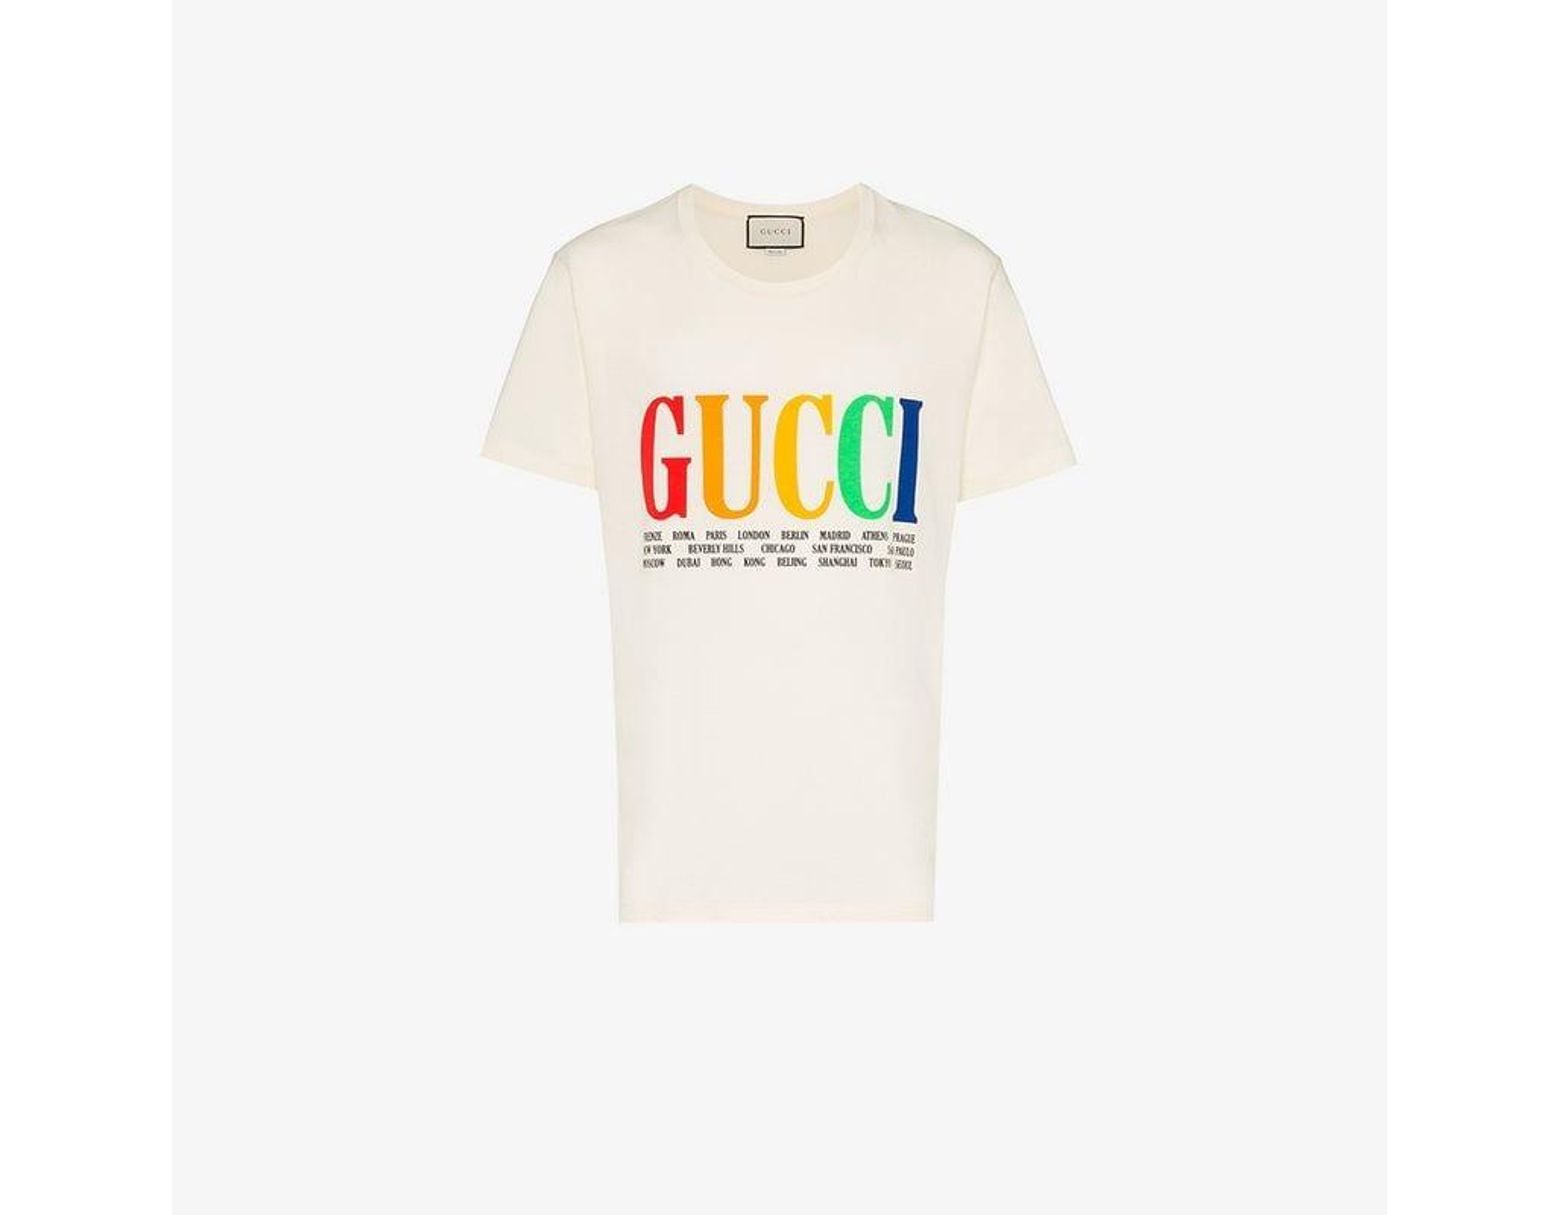 6f9055c54 Gucci Rainbow Cities Print Cotton T Shirt in White for Men - Lyst